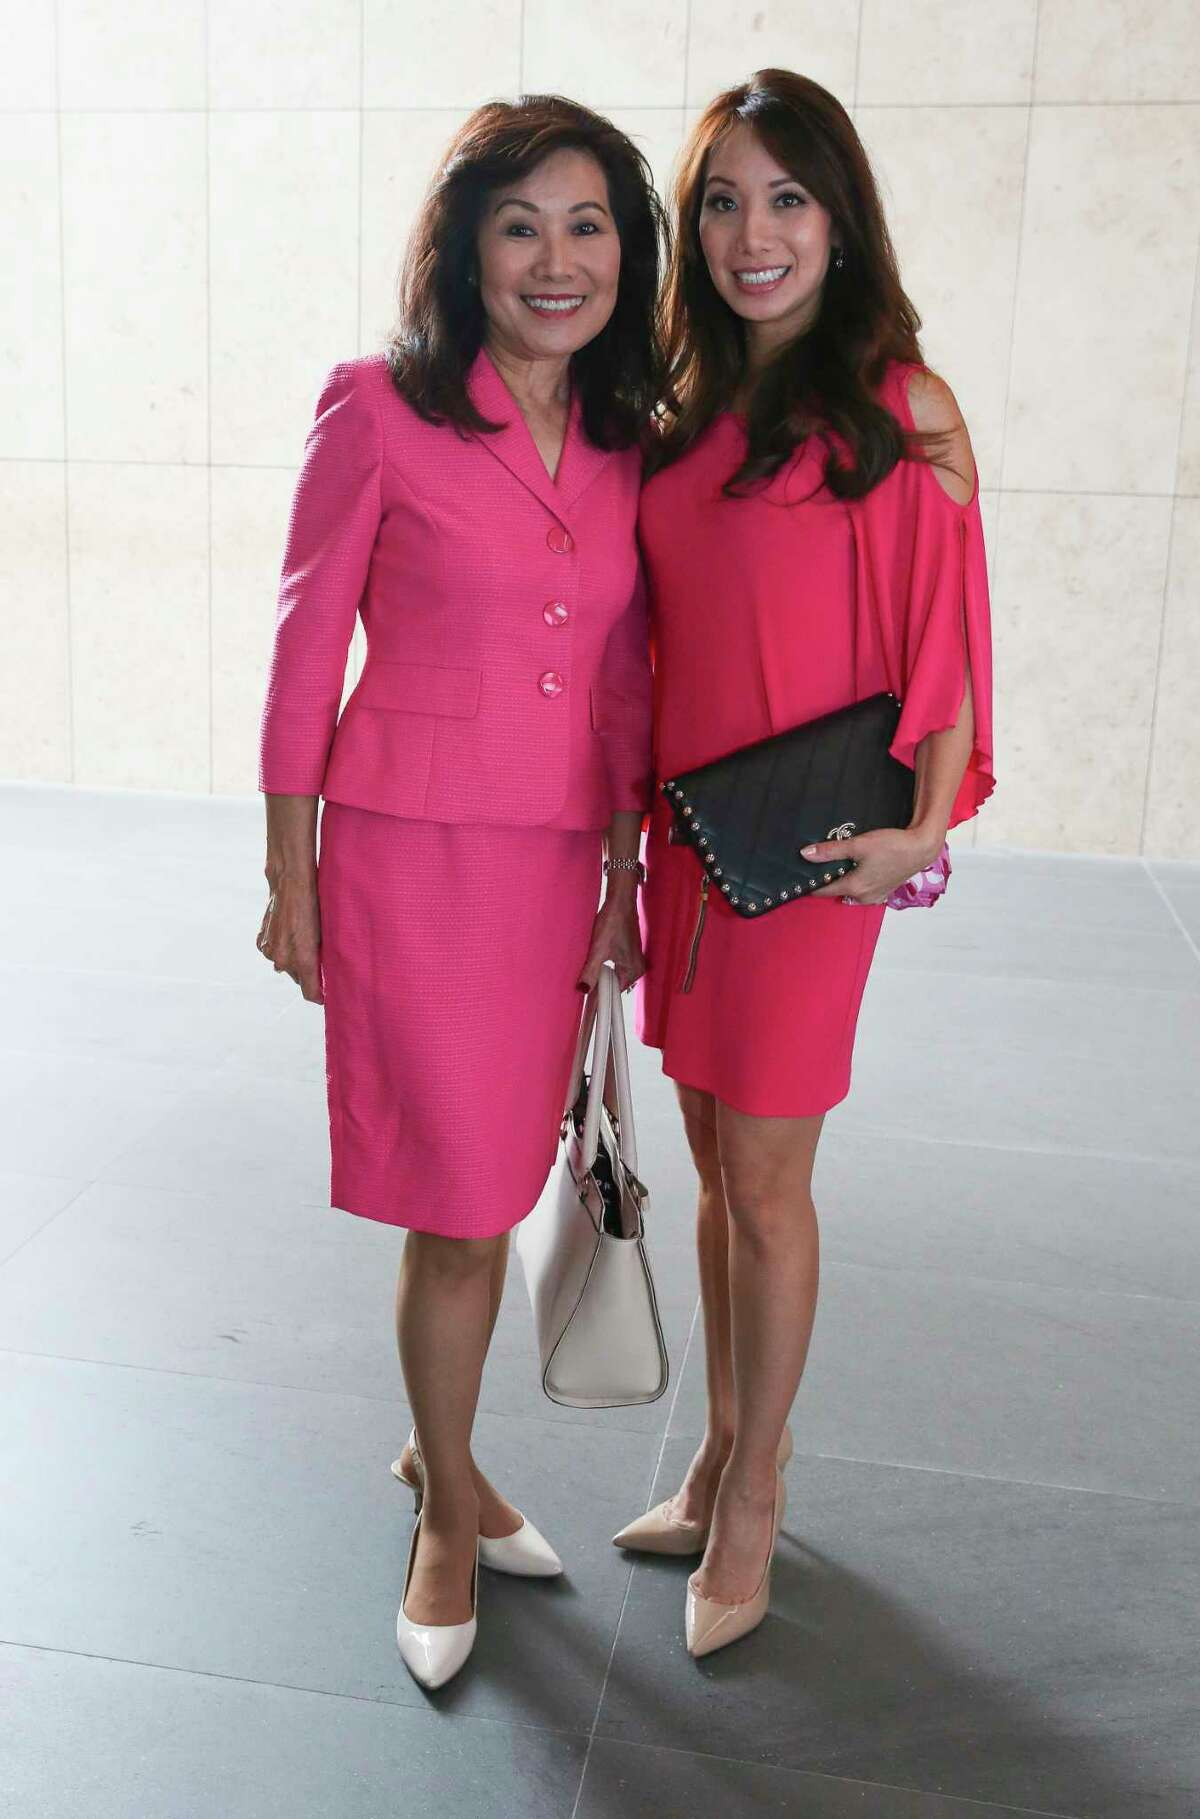 Betty Gee, left, and Tammy Su pose for a photograph at the Women in Culinary Arts Luncheon at Asia Society Texas Center on Thursday, Sept. 13, 2018, in Houston.